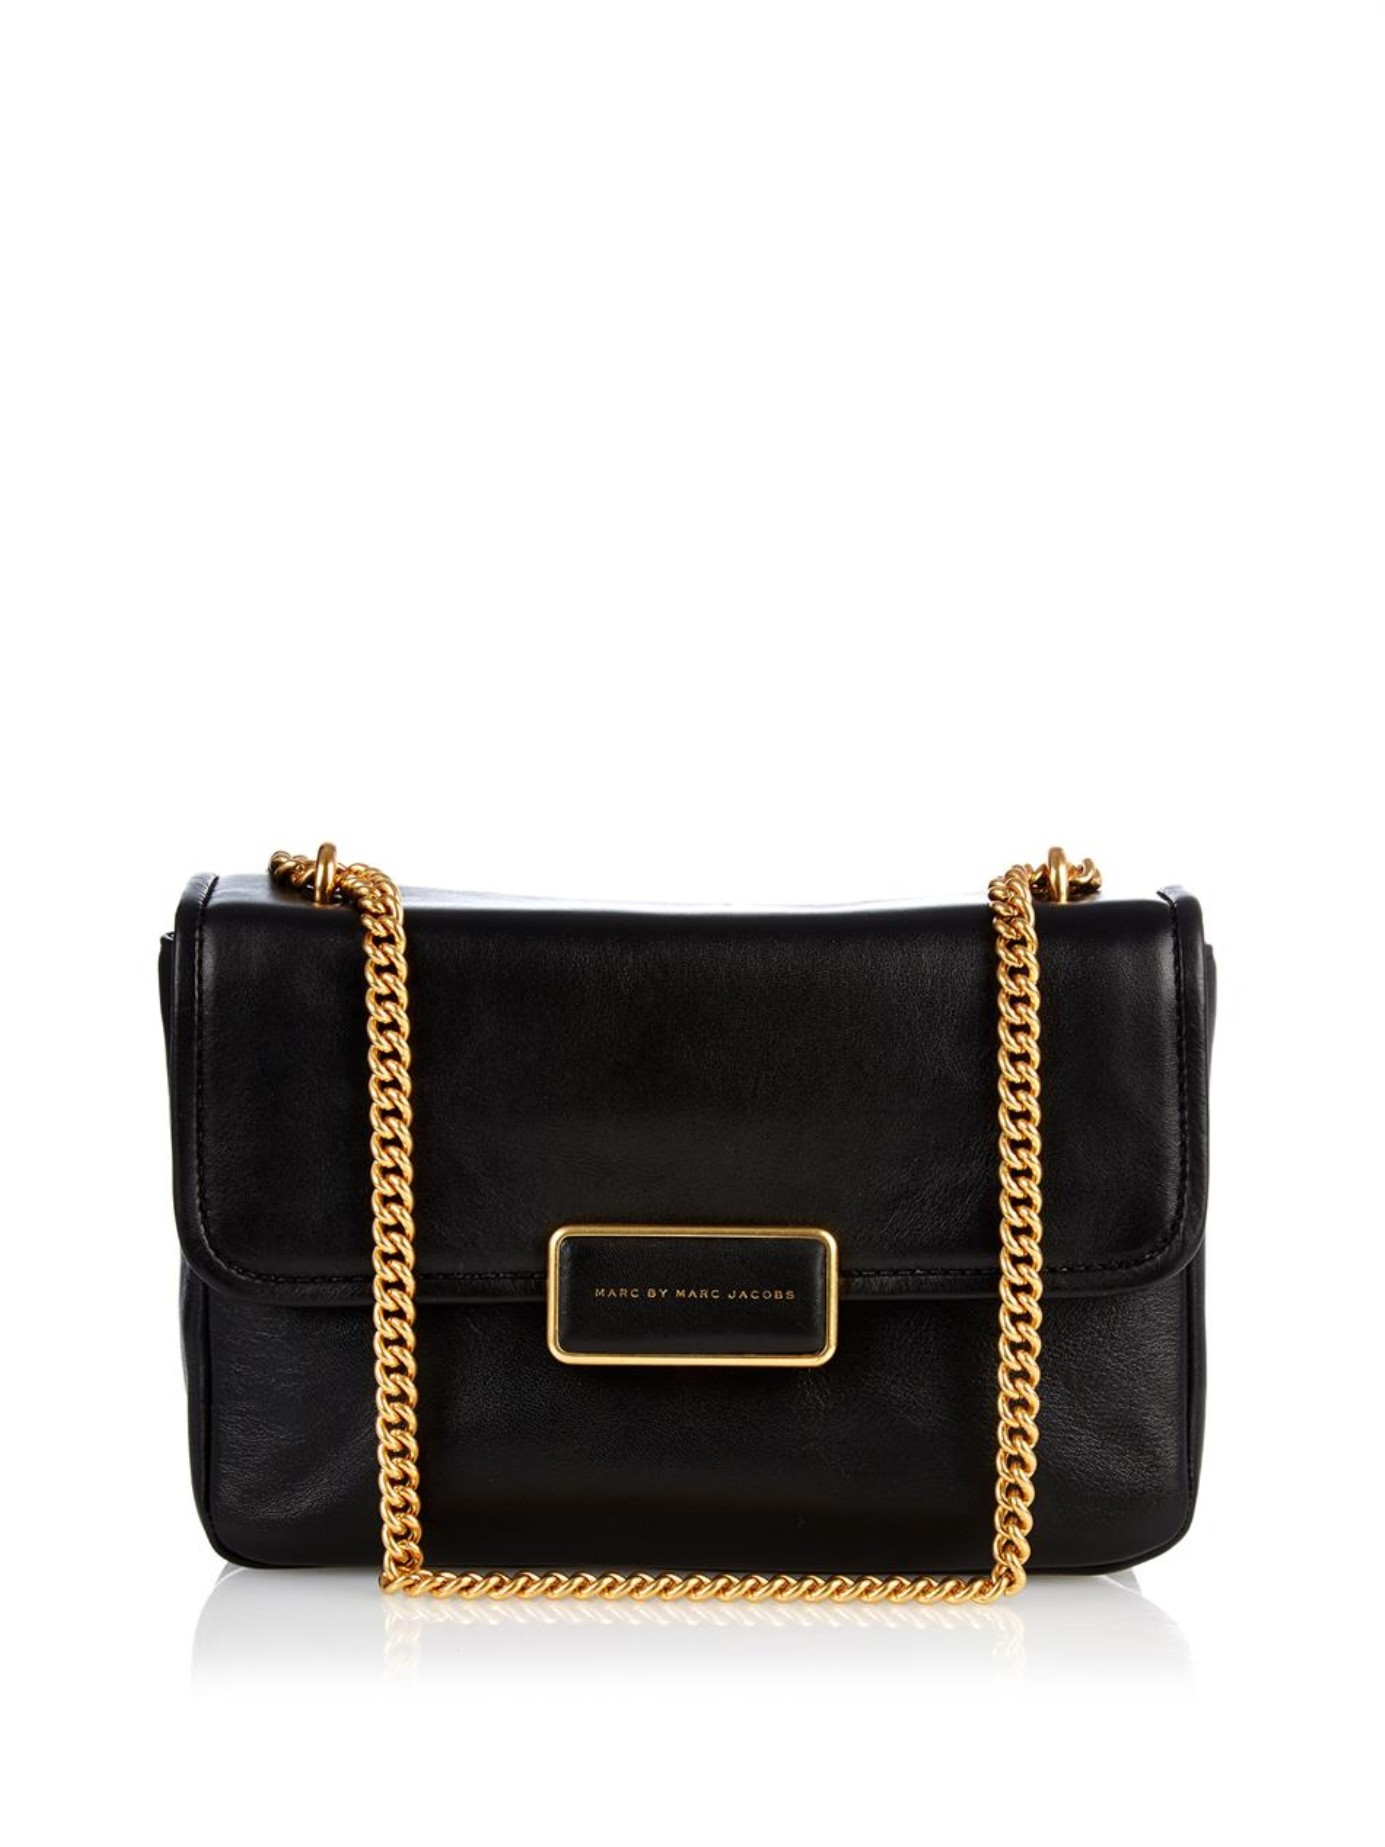 dcc2869fb896 Lyst - Marc By Marc Jacobs Rebel 24 Leather Cross-Body Bag in Black